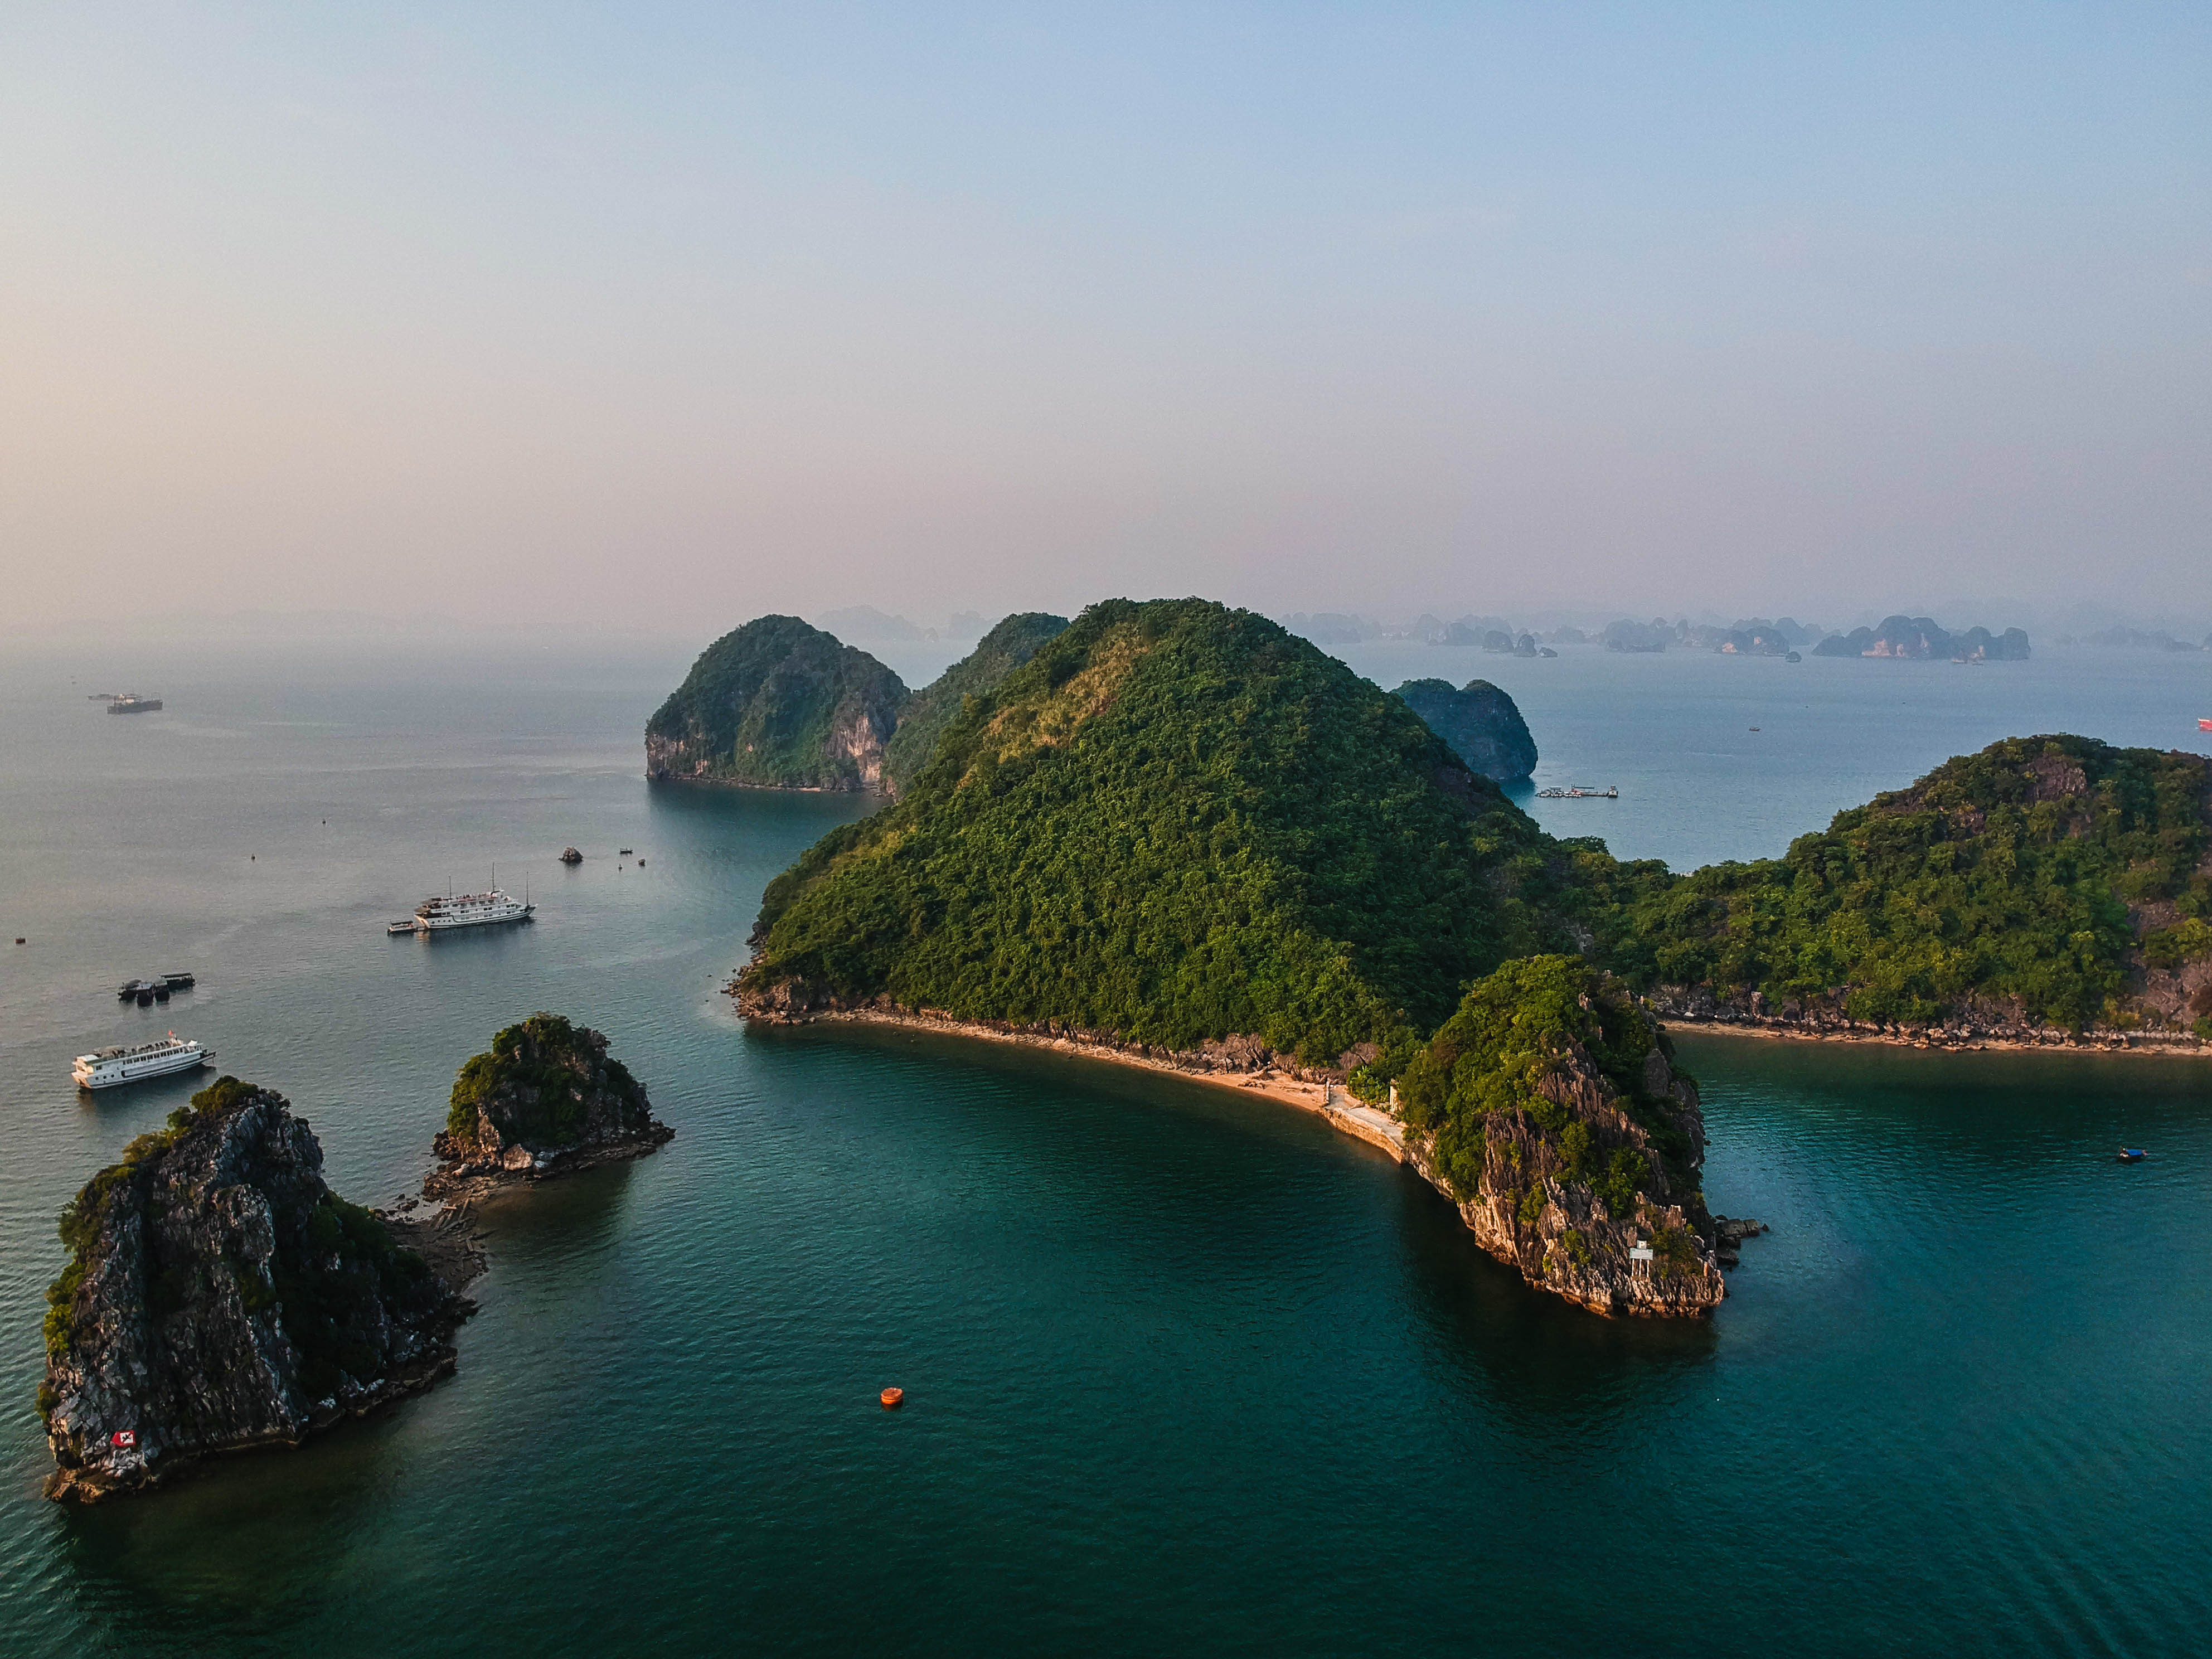 Our Halong Bay cruise review shows how to sail through the bay in style